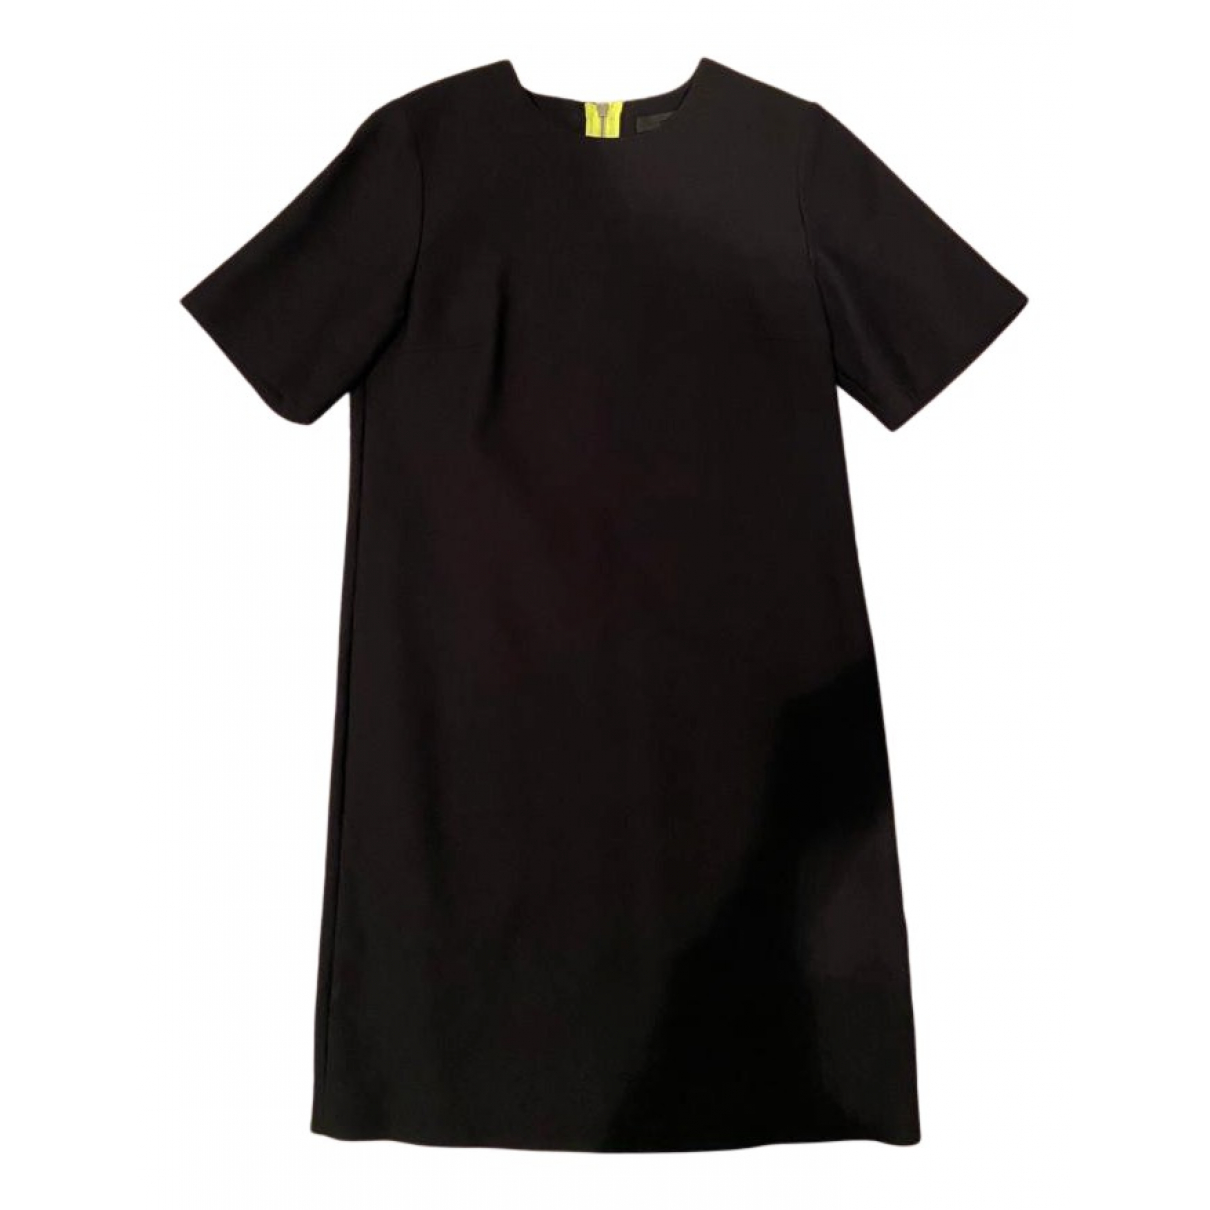 Alexander Wang N Black Cotton dress for Women 2 US